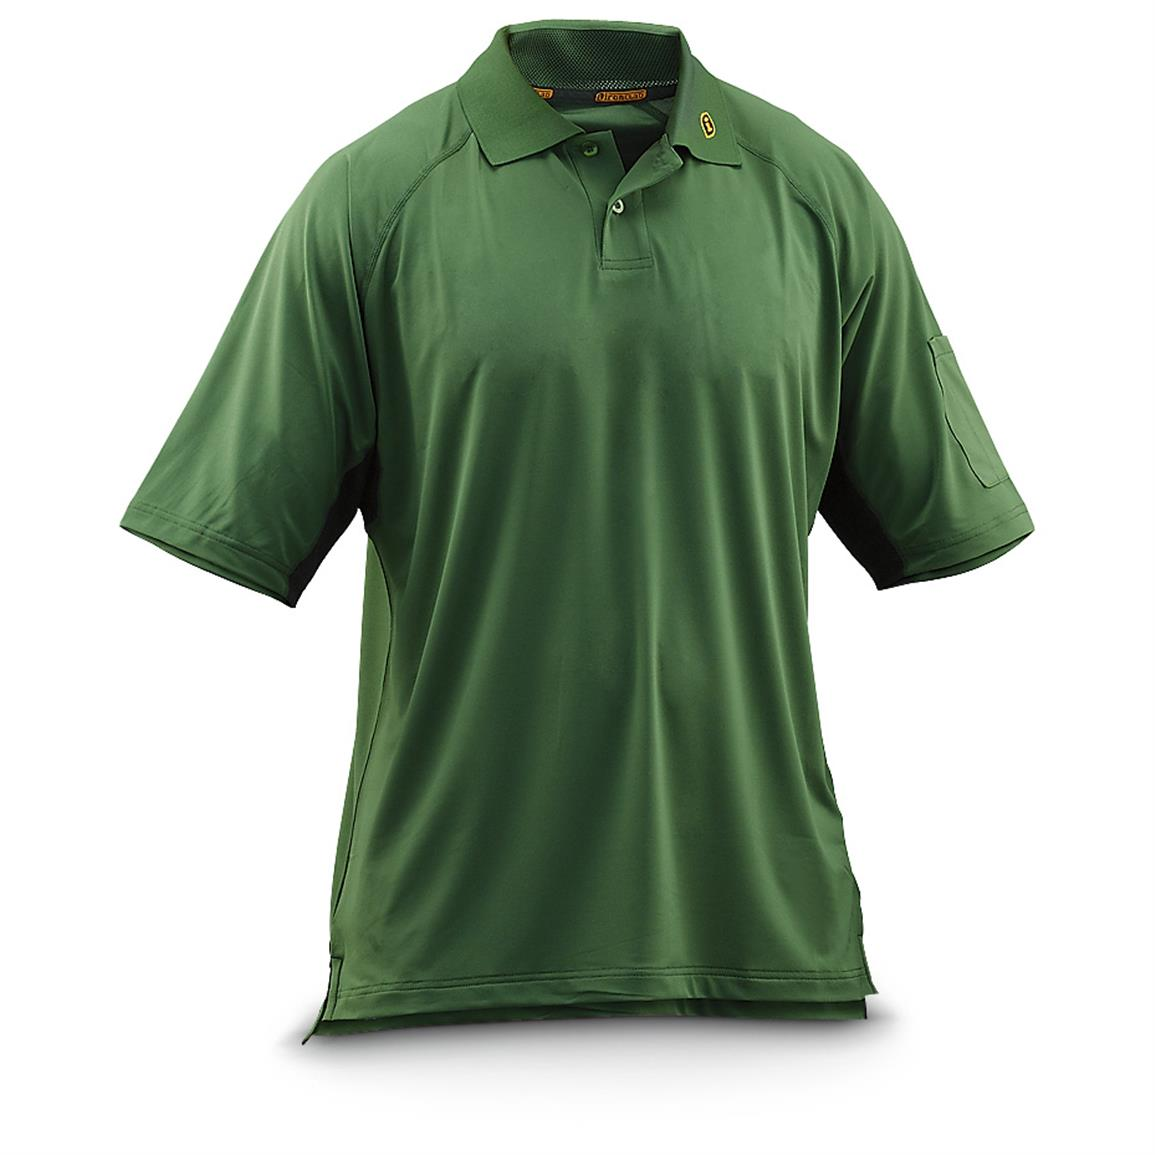 Ironclad® Short-sleeved Performance Polo Shirt. Green